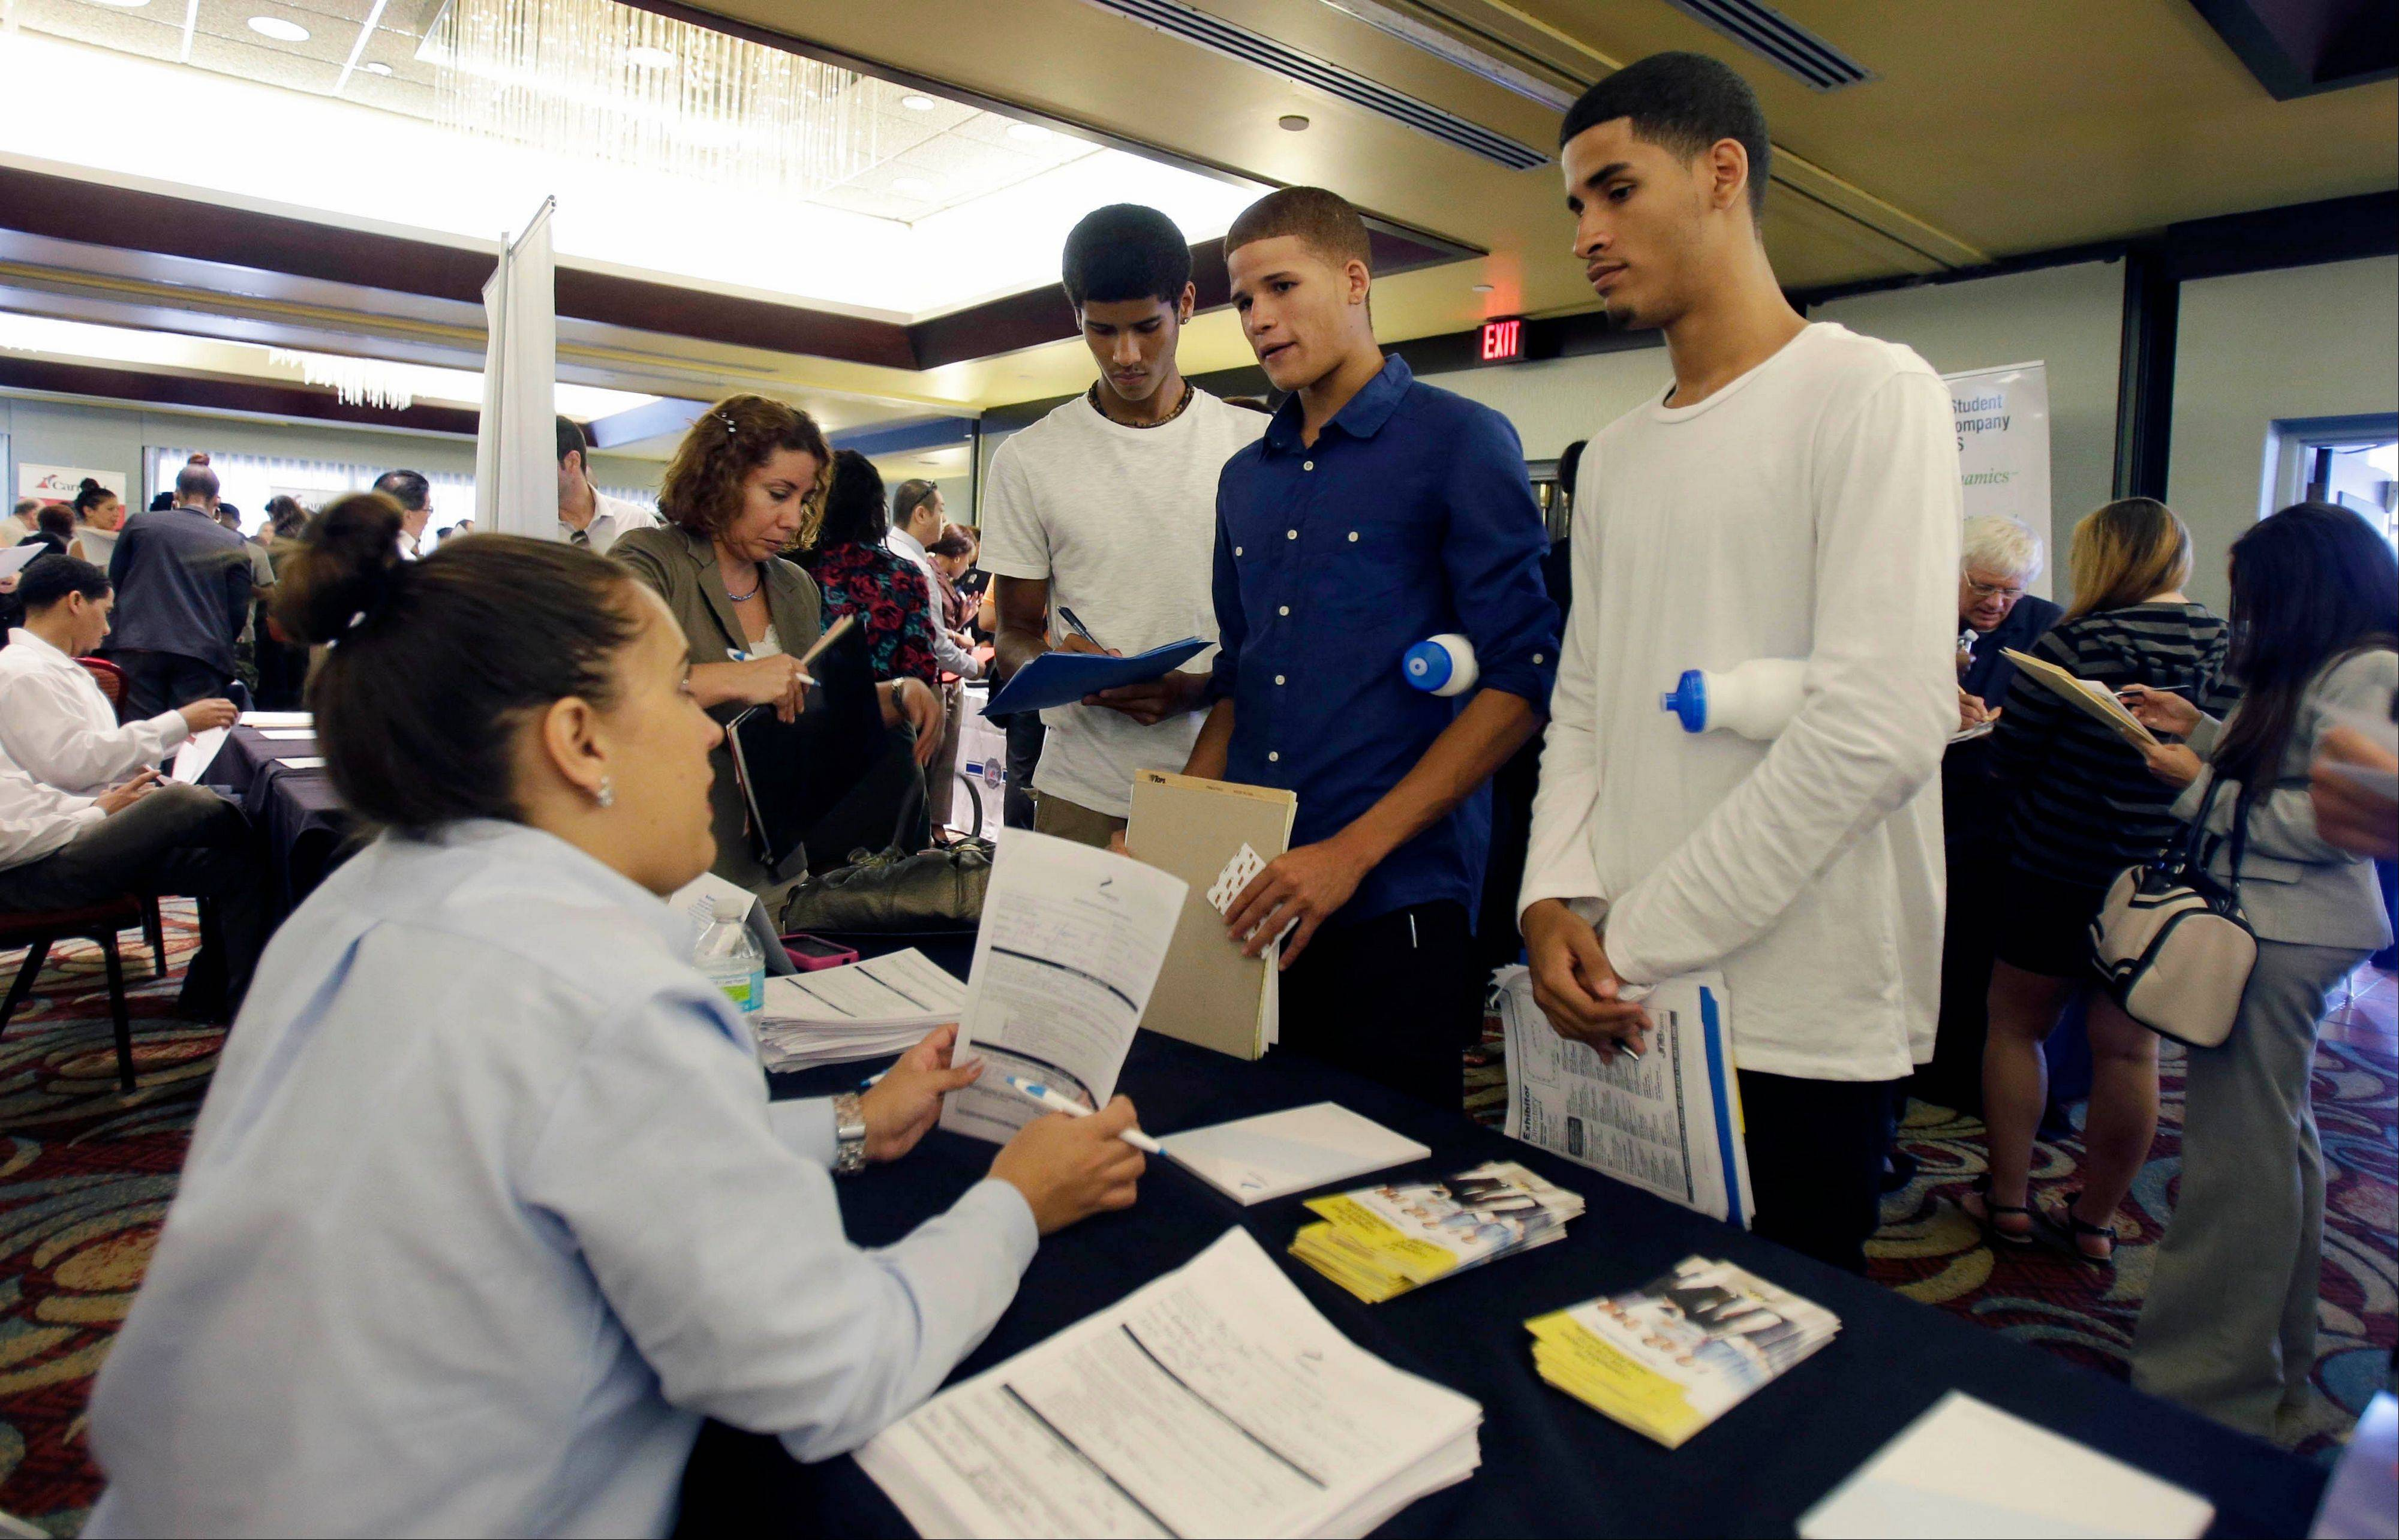 Job seekers Emilio Ferrer, Brian Ferrer, center, and Jonathan, right, of Hollywood, Fla., talk to a FirstService representative at a job fair in Miami Lakes, Fla.